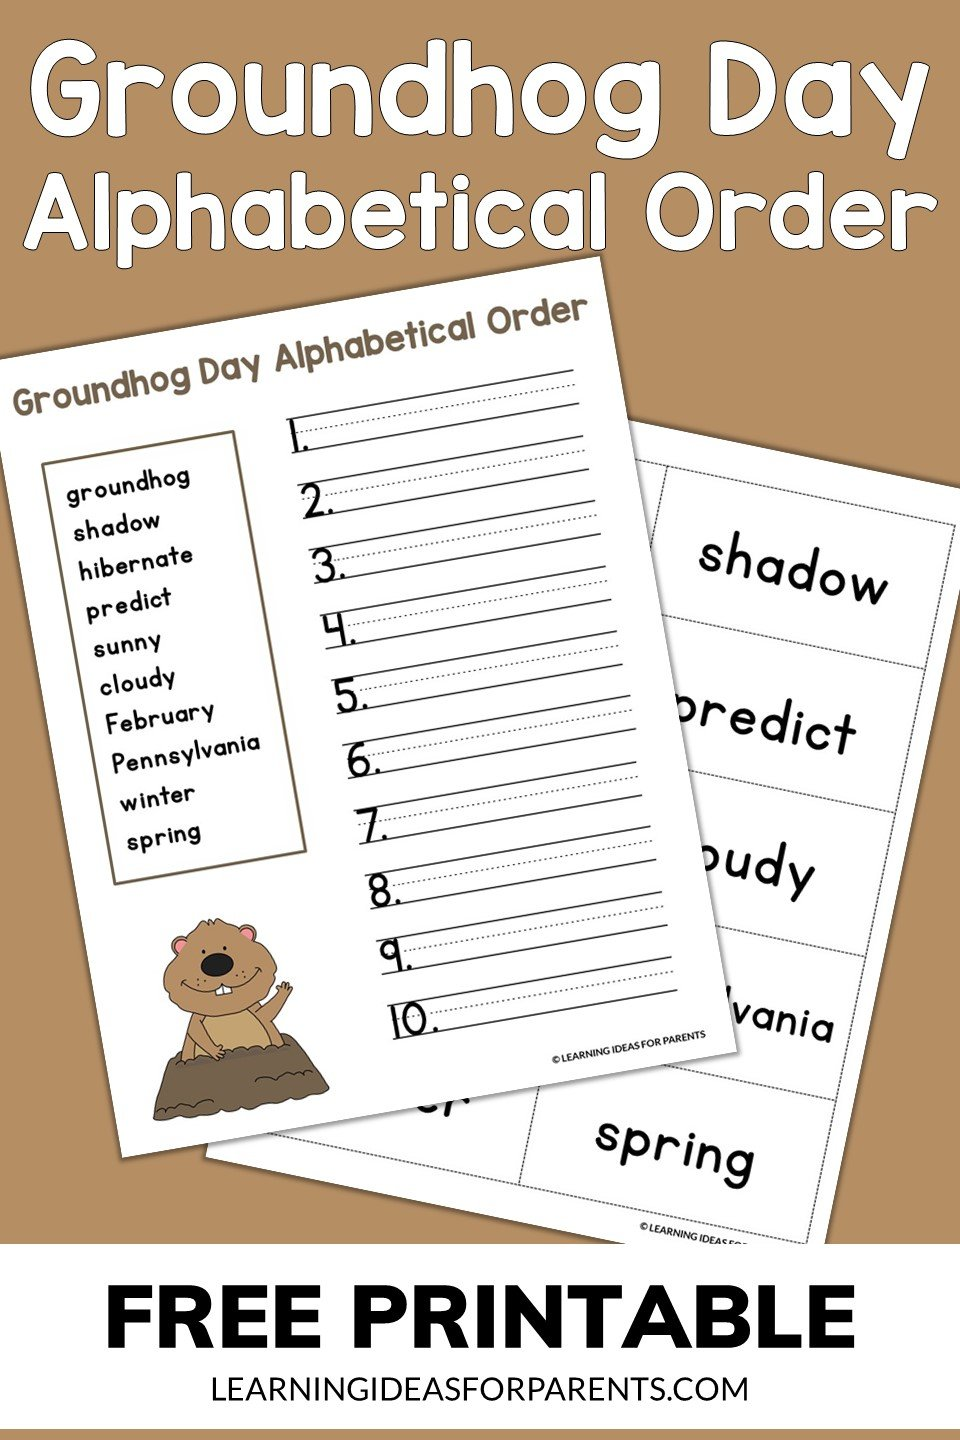 Free printable Groundhog Day alphabetical order activity